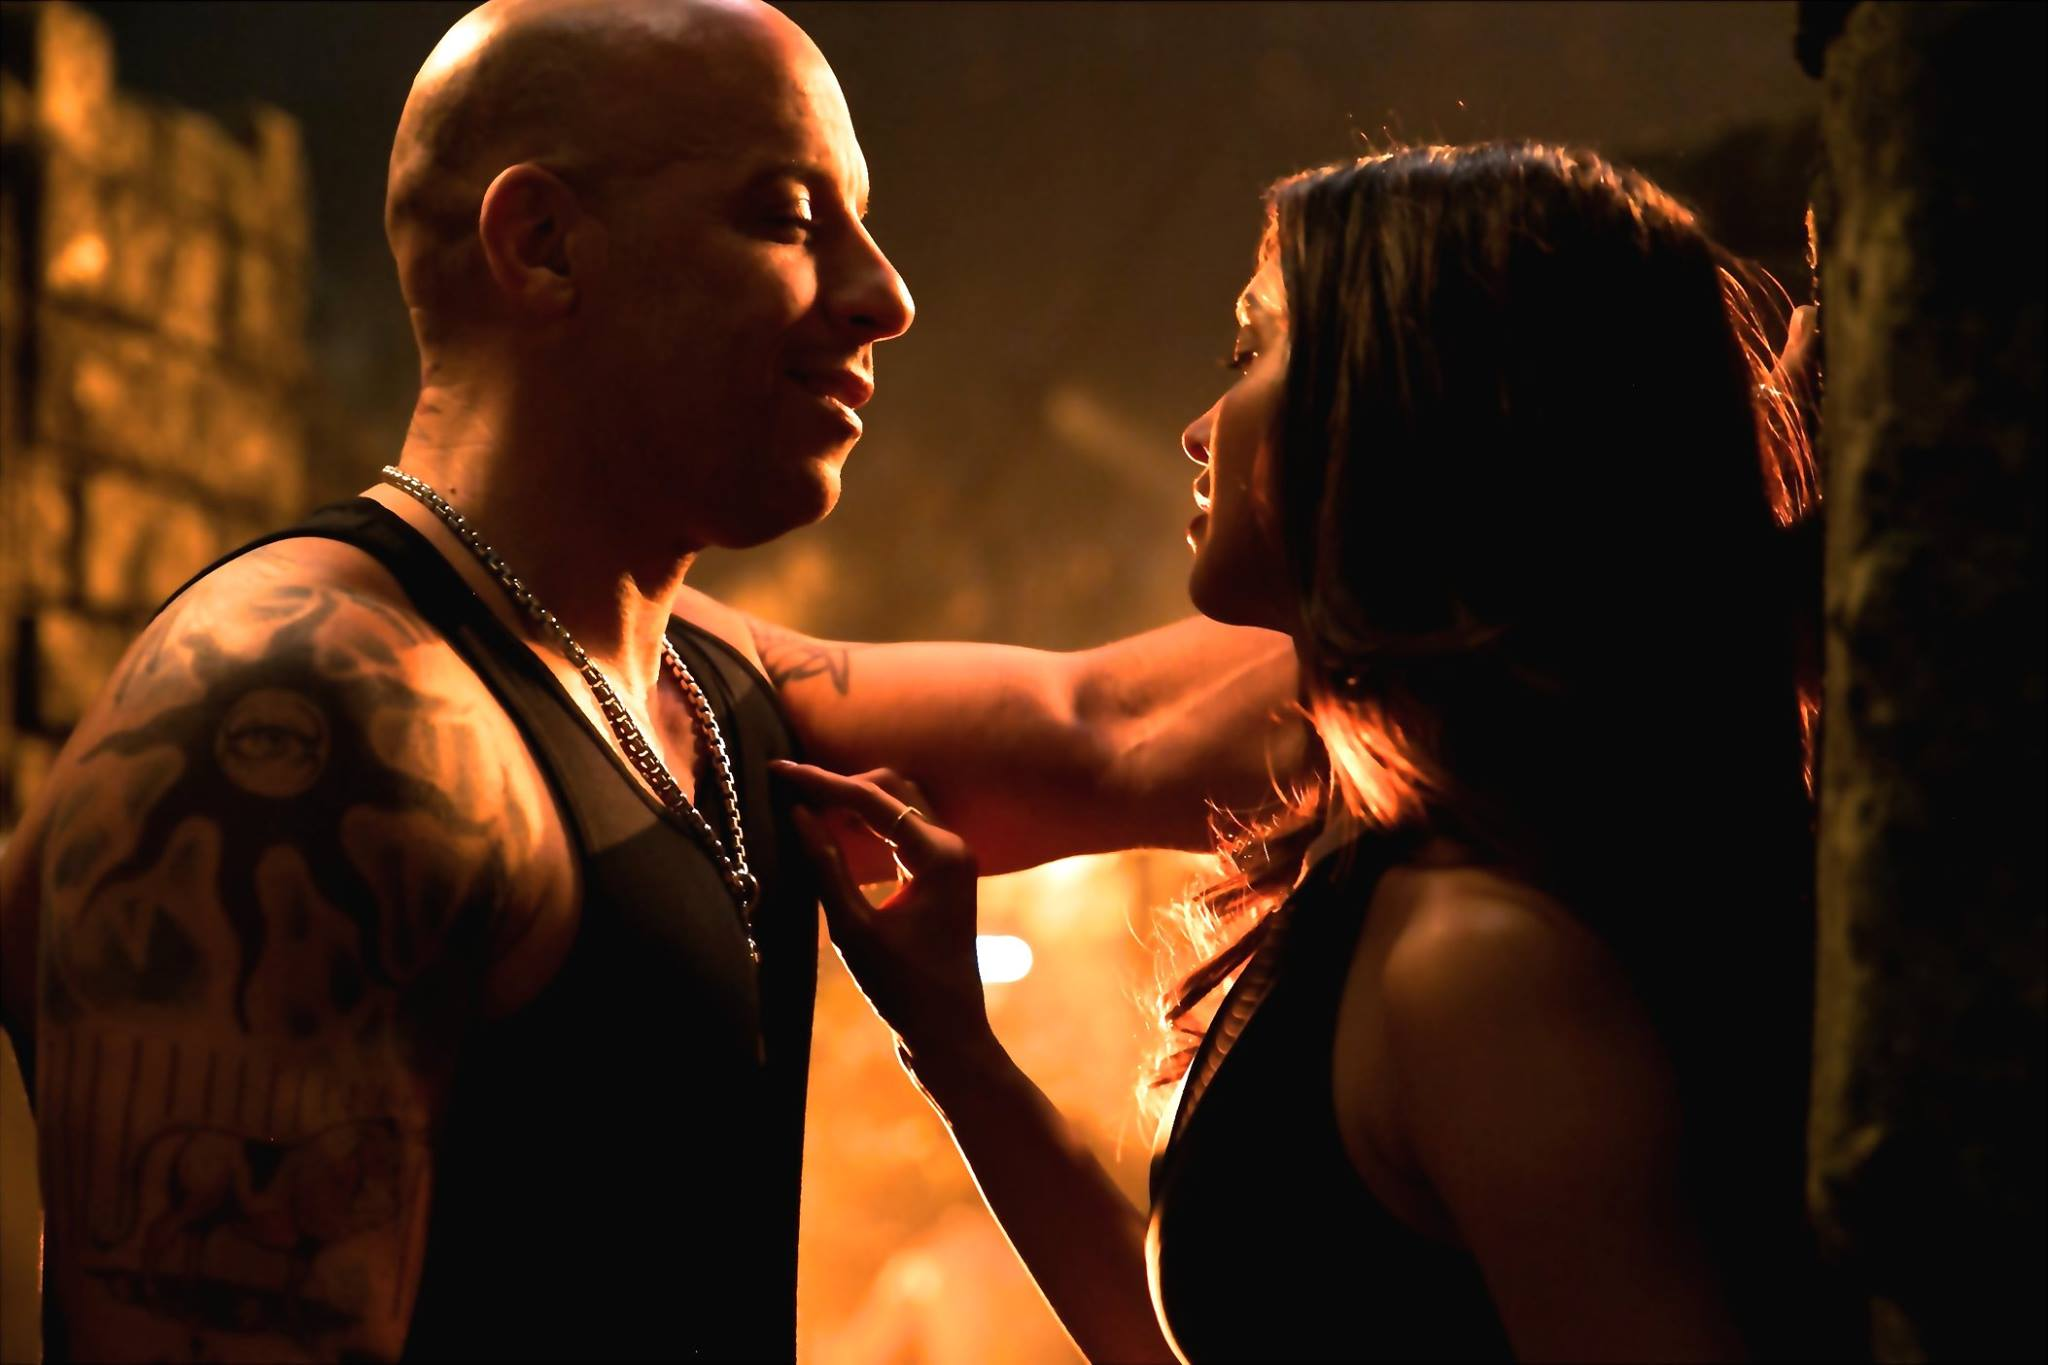 ภาคใหม่ xXx: RETURN OF XANDER CAGE movie-hd